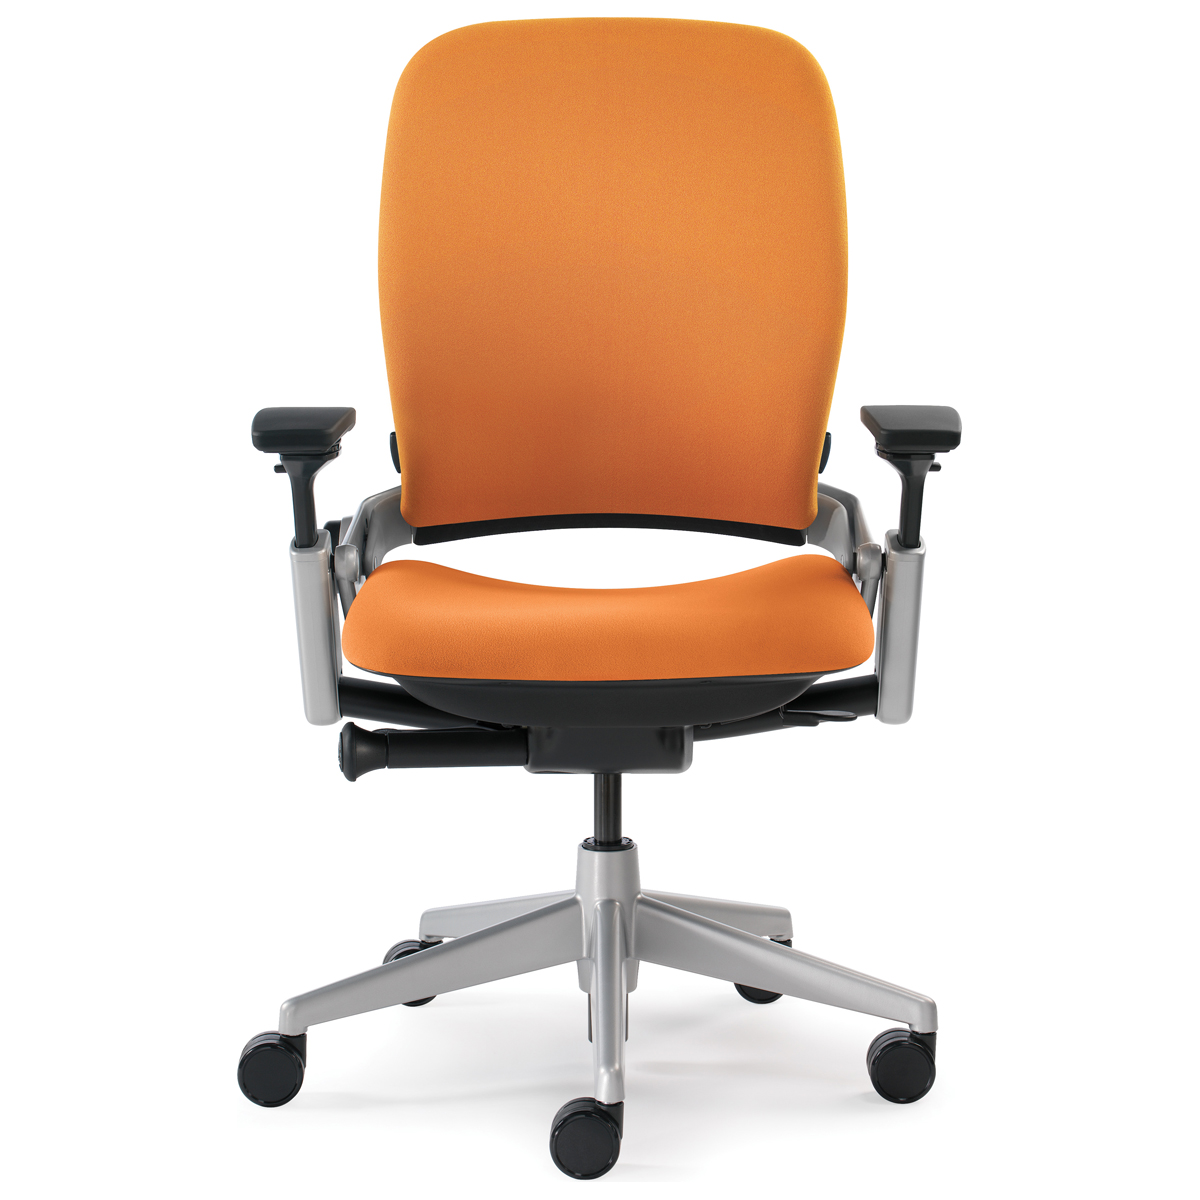 Ergonomic Chair Steelcase Leap Chair Steelcase Leap Ergonomic Office Chair